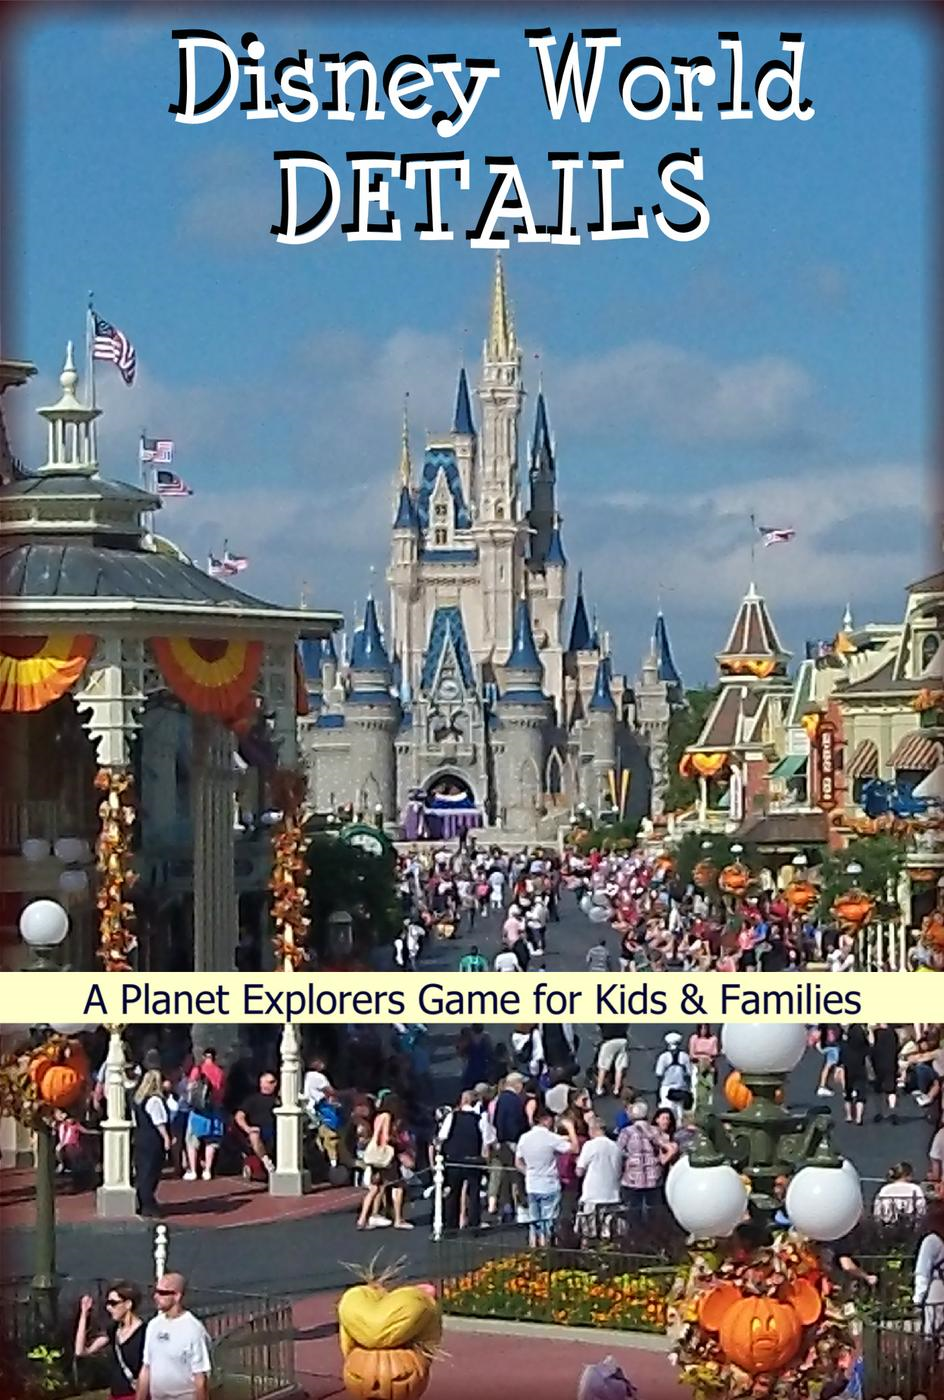 Disney World Details: A Planet Explorers Game for Kids & Families (Planet Explorers Travel Guides for Kids)